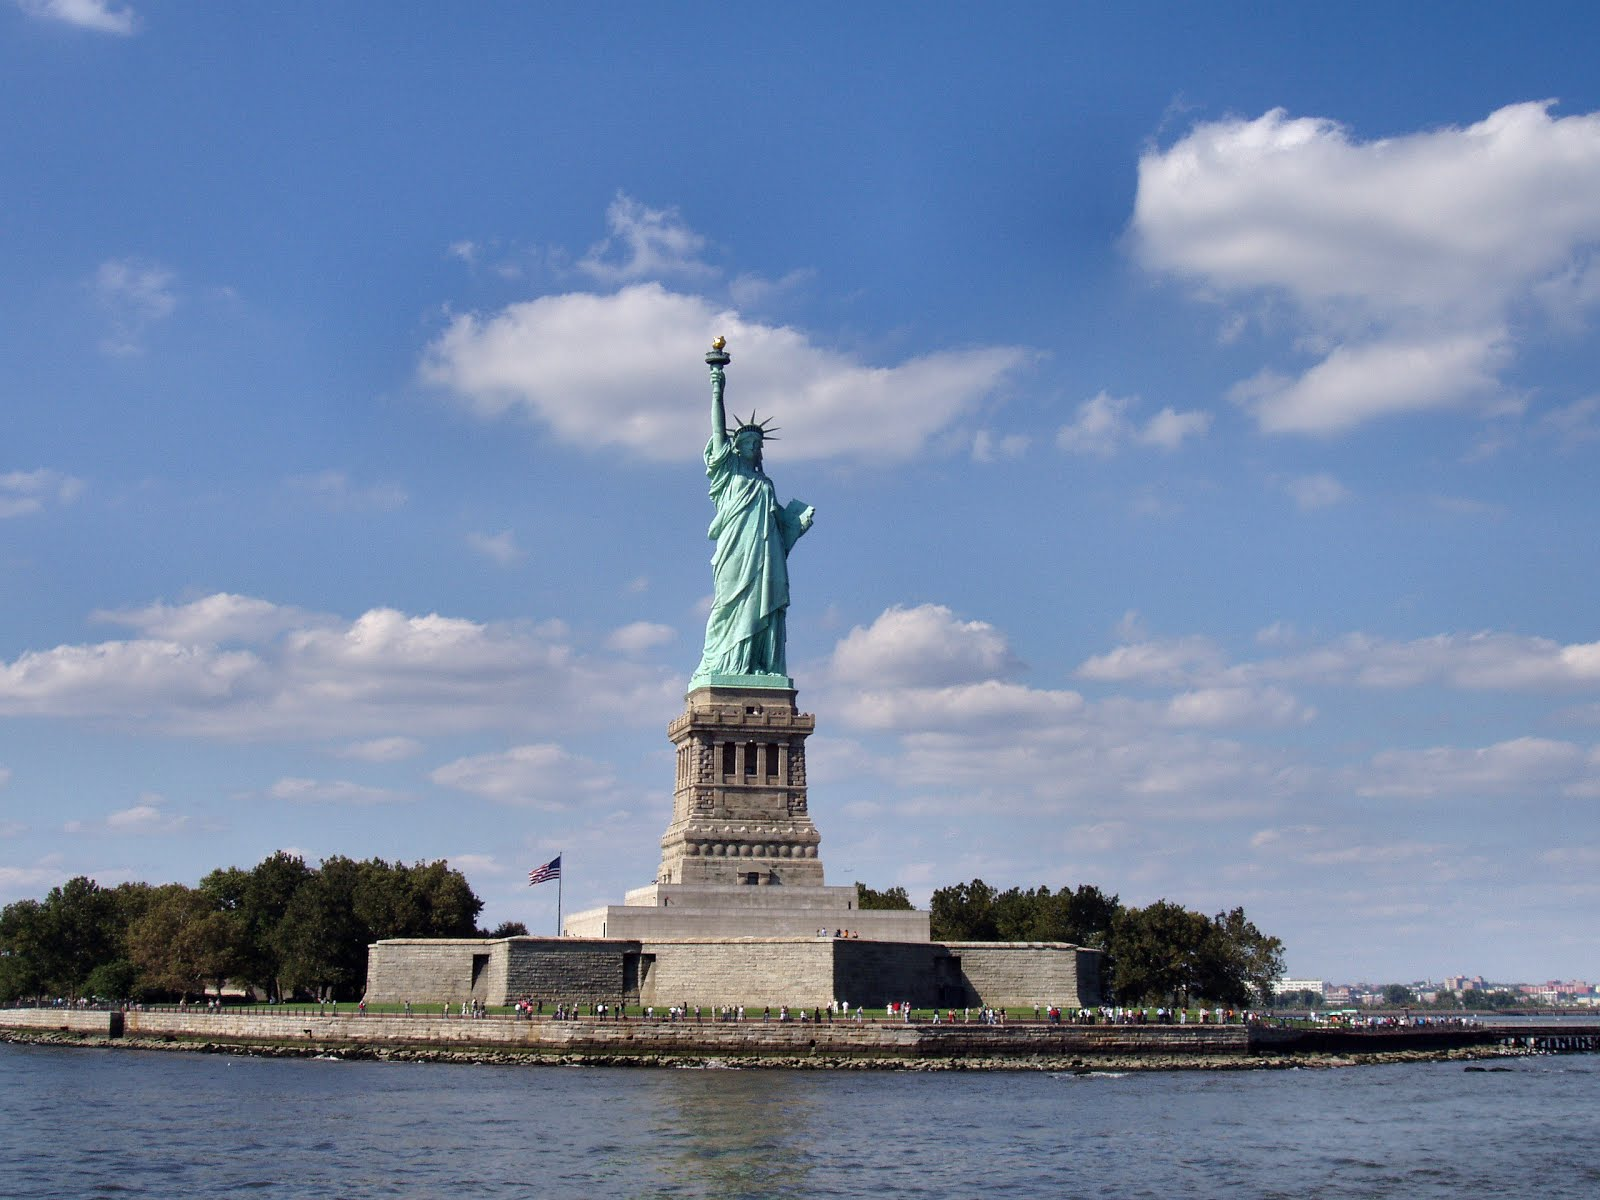 File:Liberty-statue-from-front